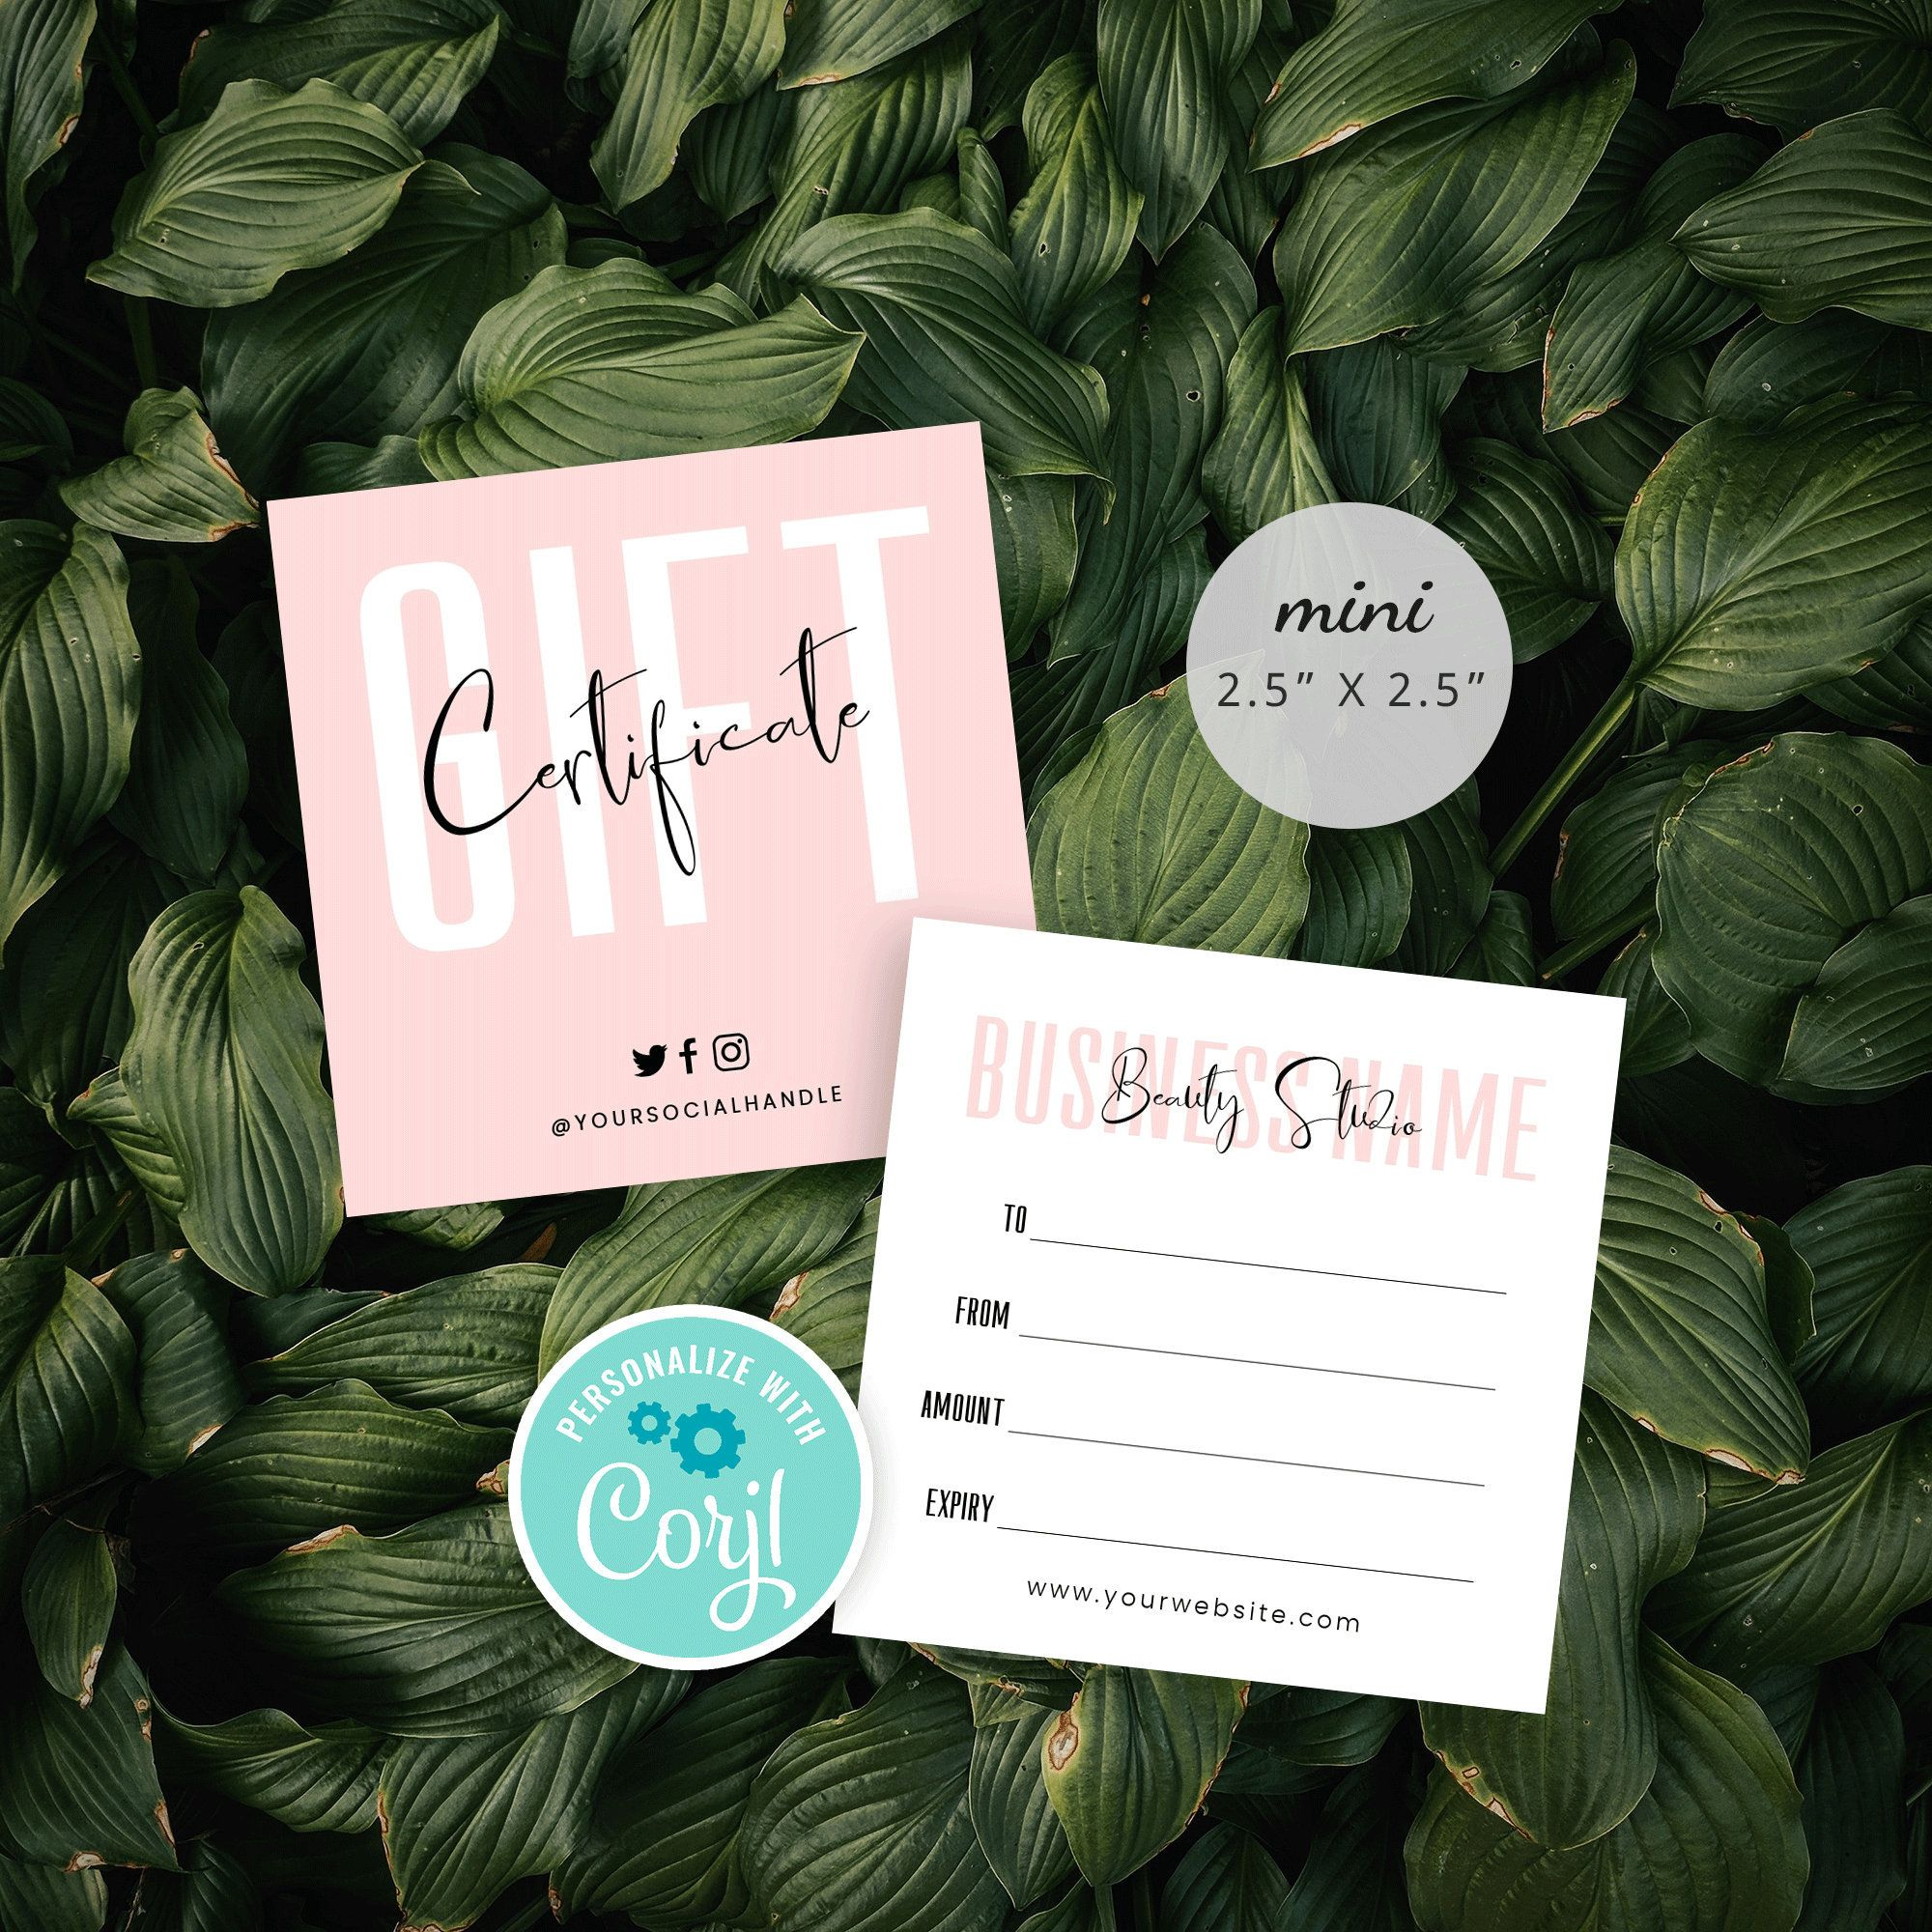 Mini Gift Certificate Template Editable Gift Vouchers Diy Etsy In 2020 Small Business Gifts Gift Certificate Template Diy Gift Card